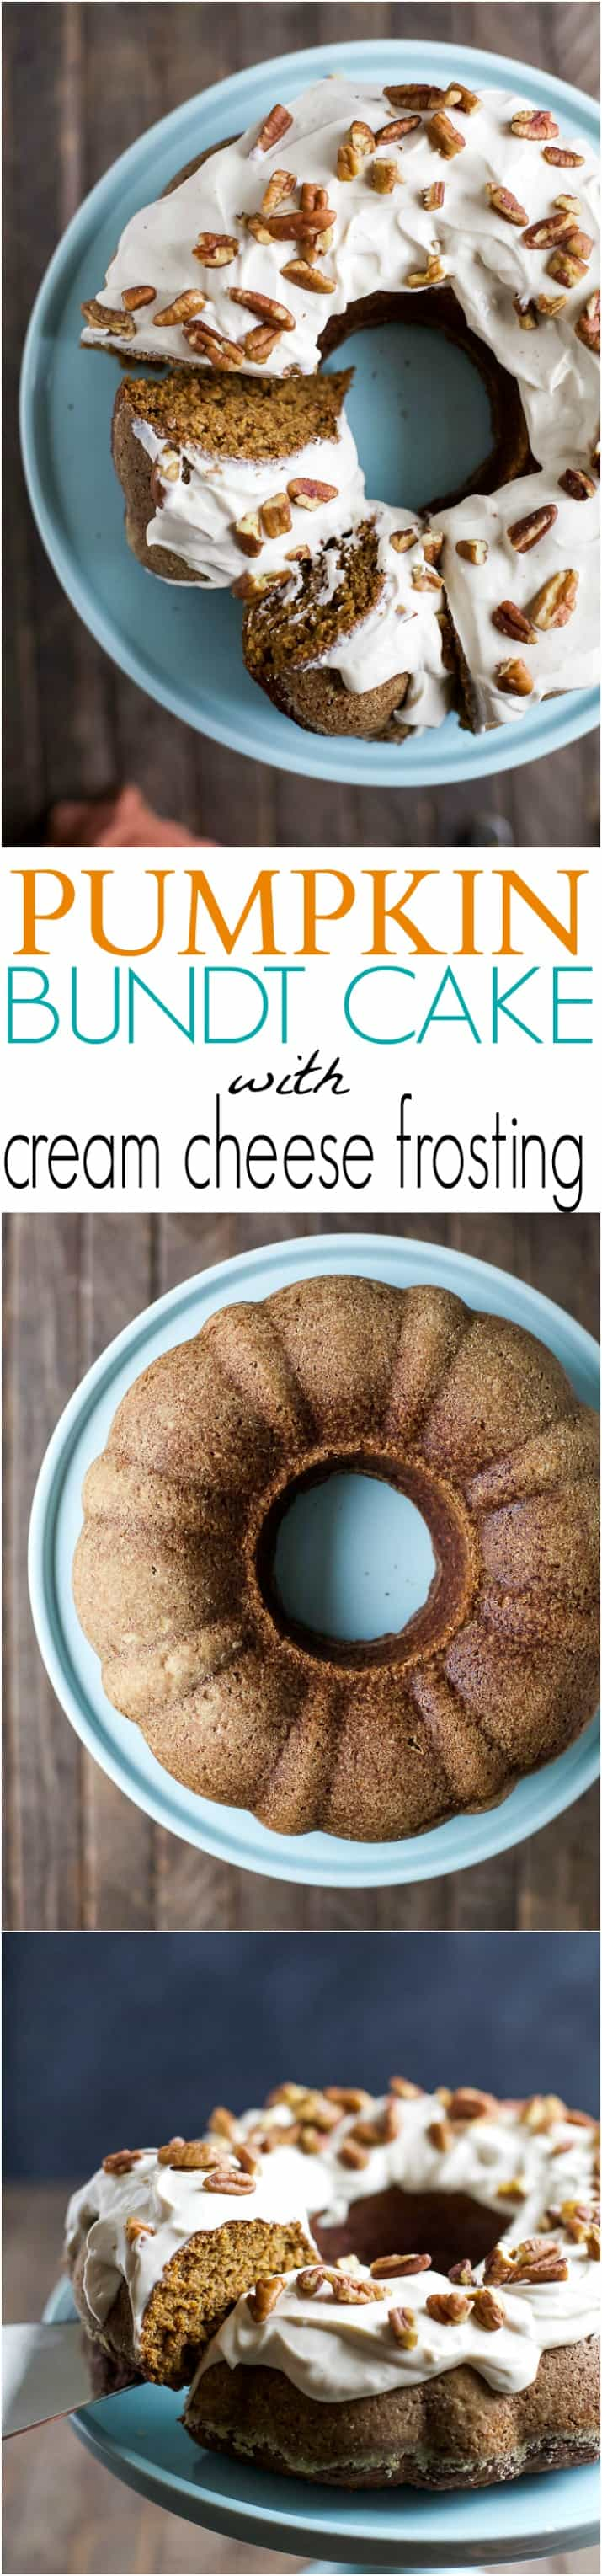 Three Images of Pumpkin Bundt Cake on Top of a Table